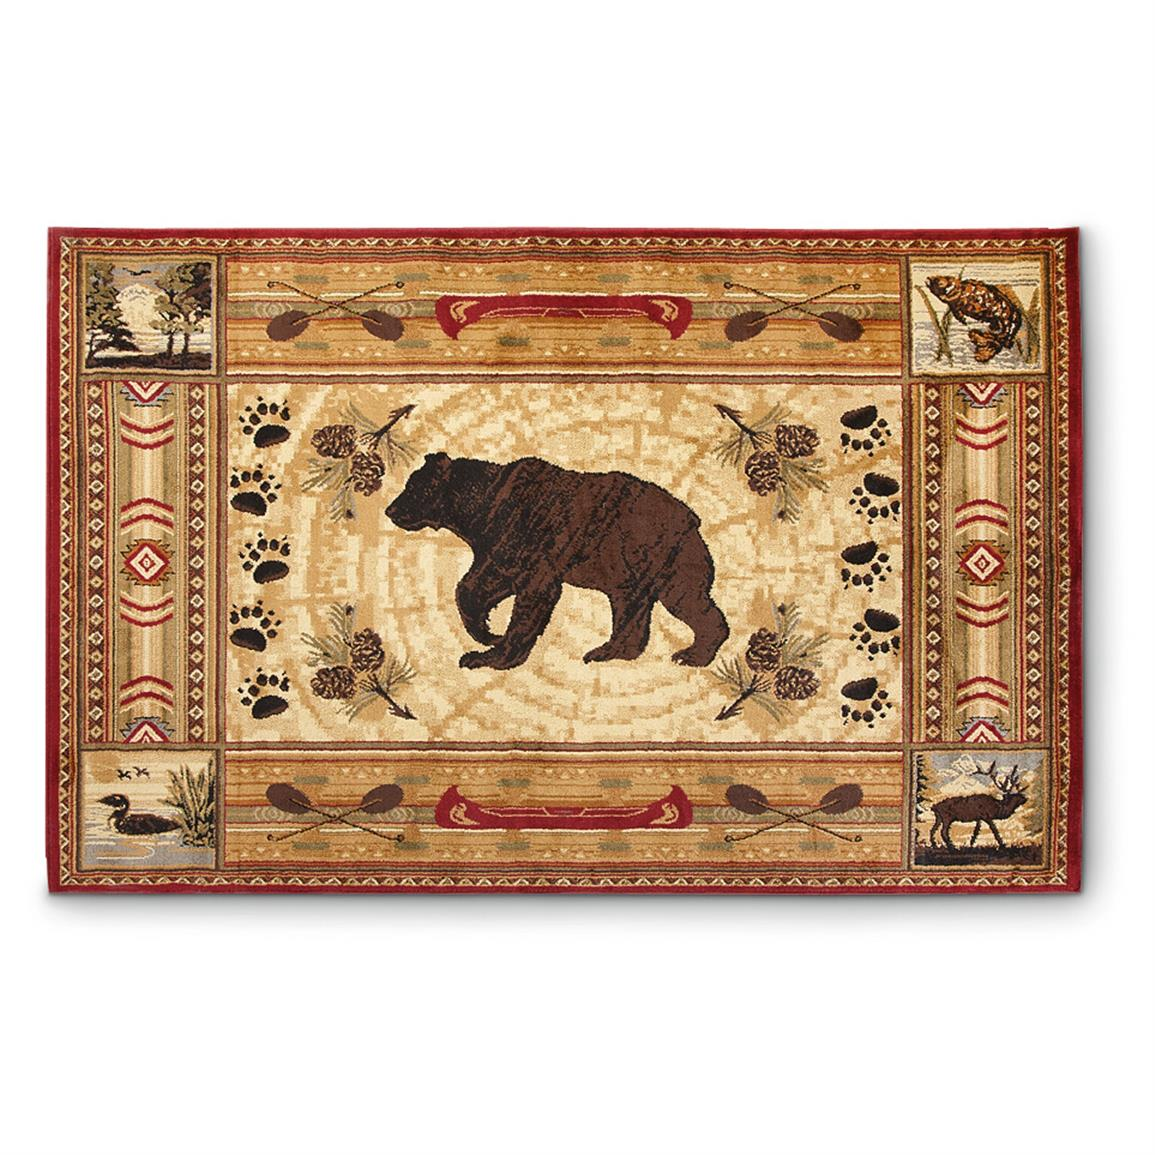 Lodge Rug 607474 Rugs At Sportsman S Guide